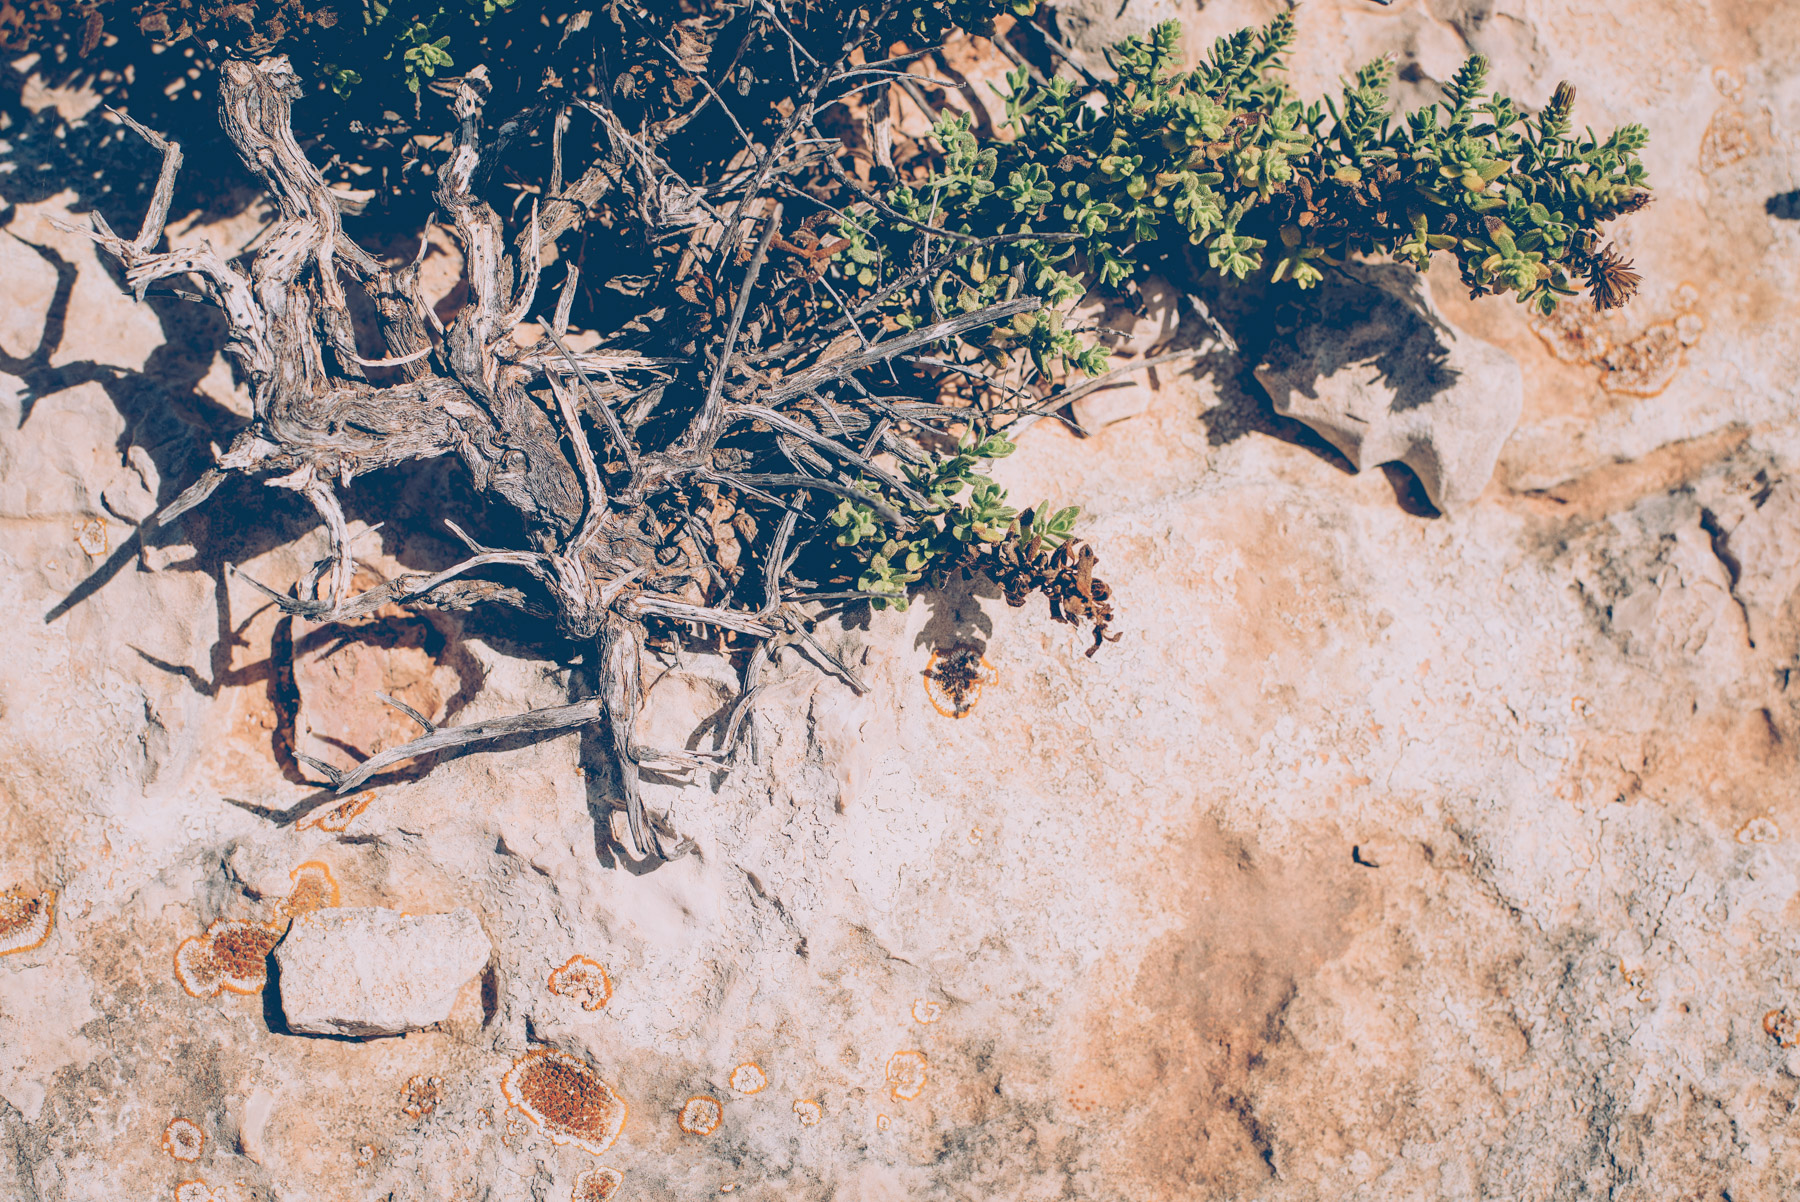 detail of some green plants growing on the rocks of lampedusa